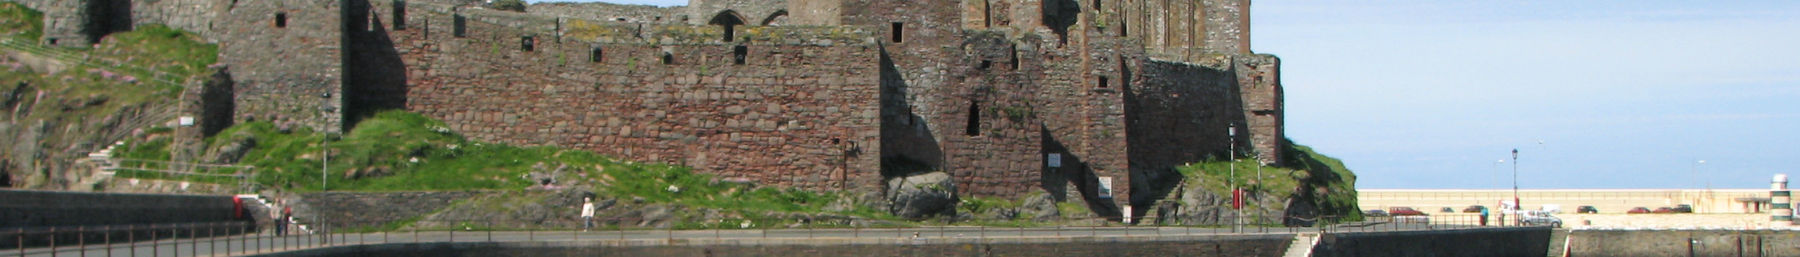 Isle of man banner Peel castle.jpg